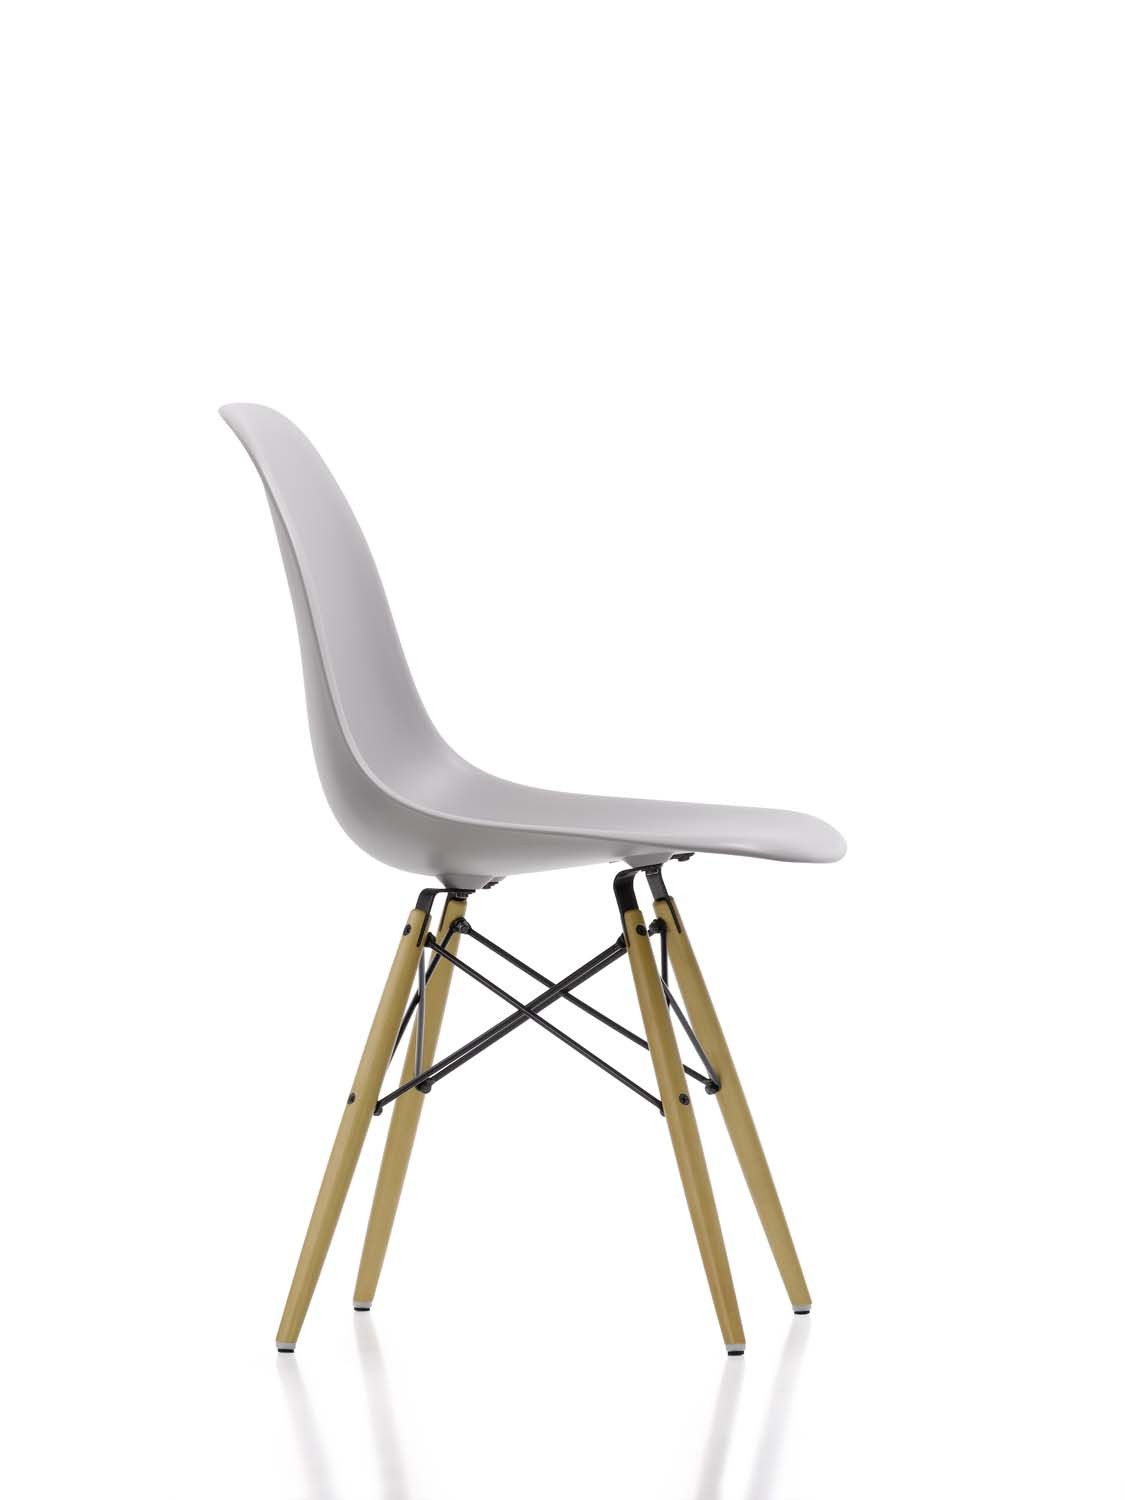 Sedia Eames Dws Eames Dsw Chair Dining Chairs Inspiration Eames Dsw Chair